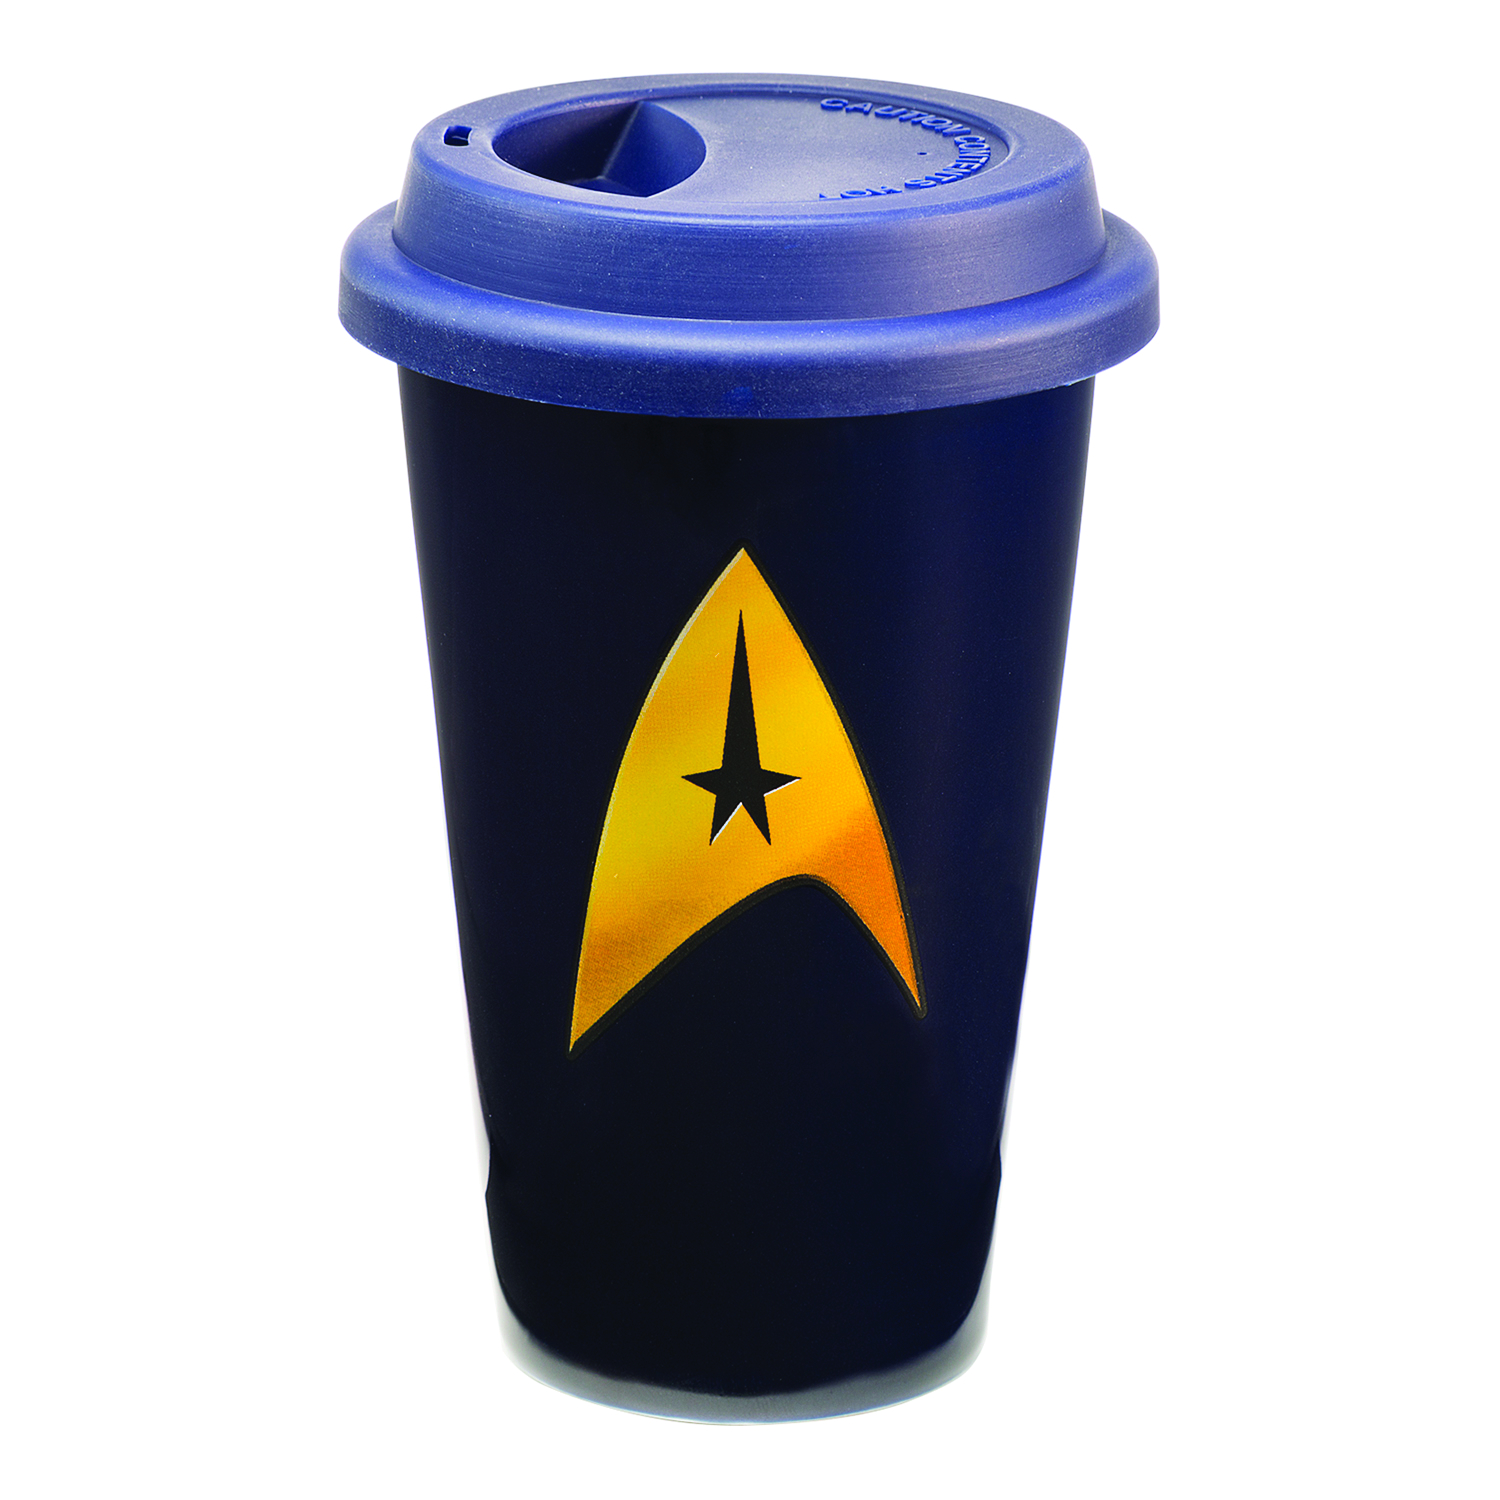 STAR TREK 12OZ CERAMIC TRAVEL MUG